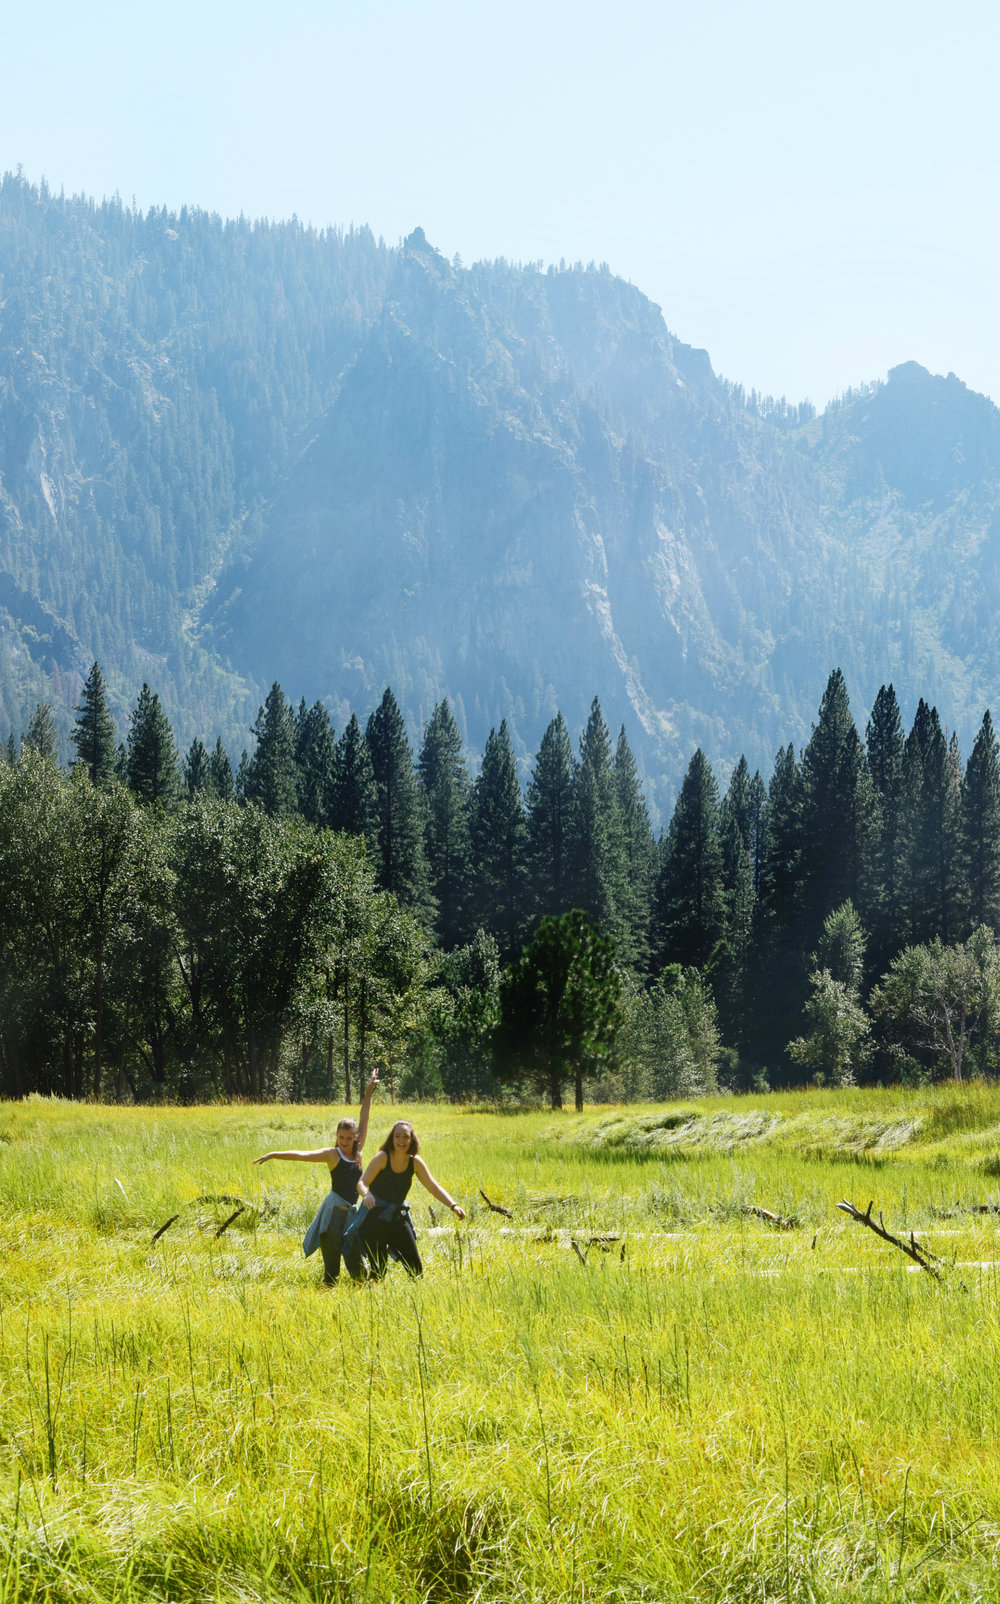 Nothing feels more like summer than the open plains and the warm breeze with the company of great friends. Yosemite national park is a gold mine for beautiful locations and life long memories.